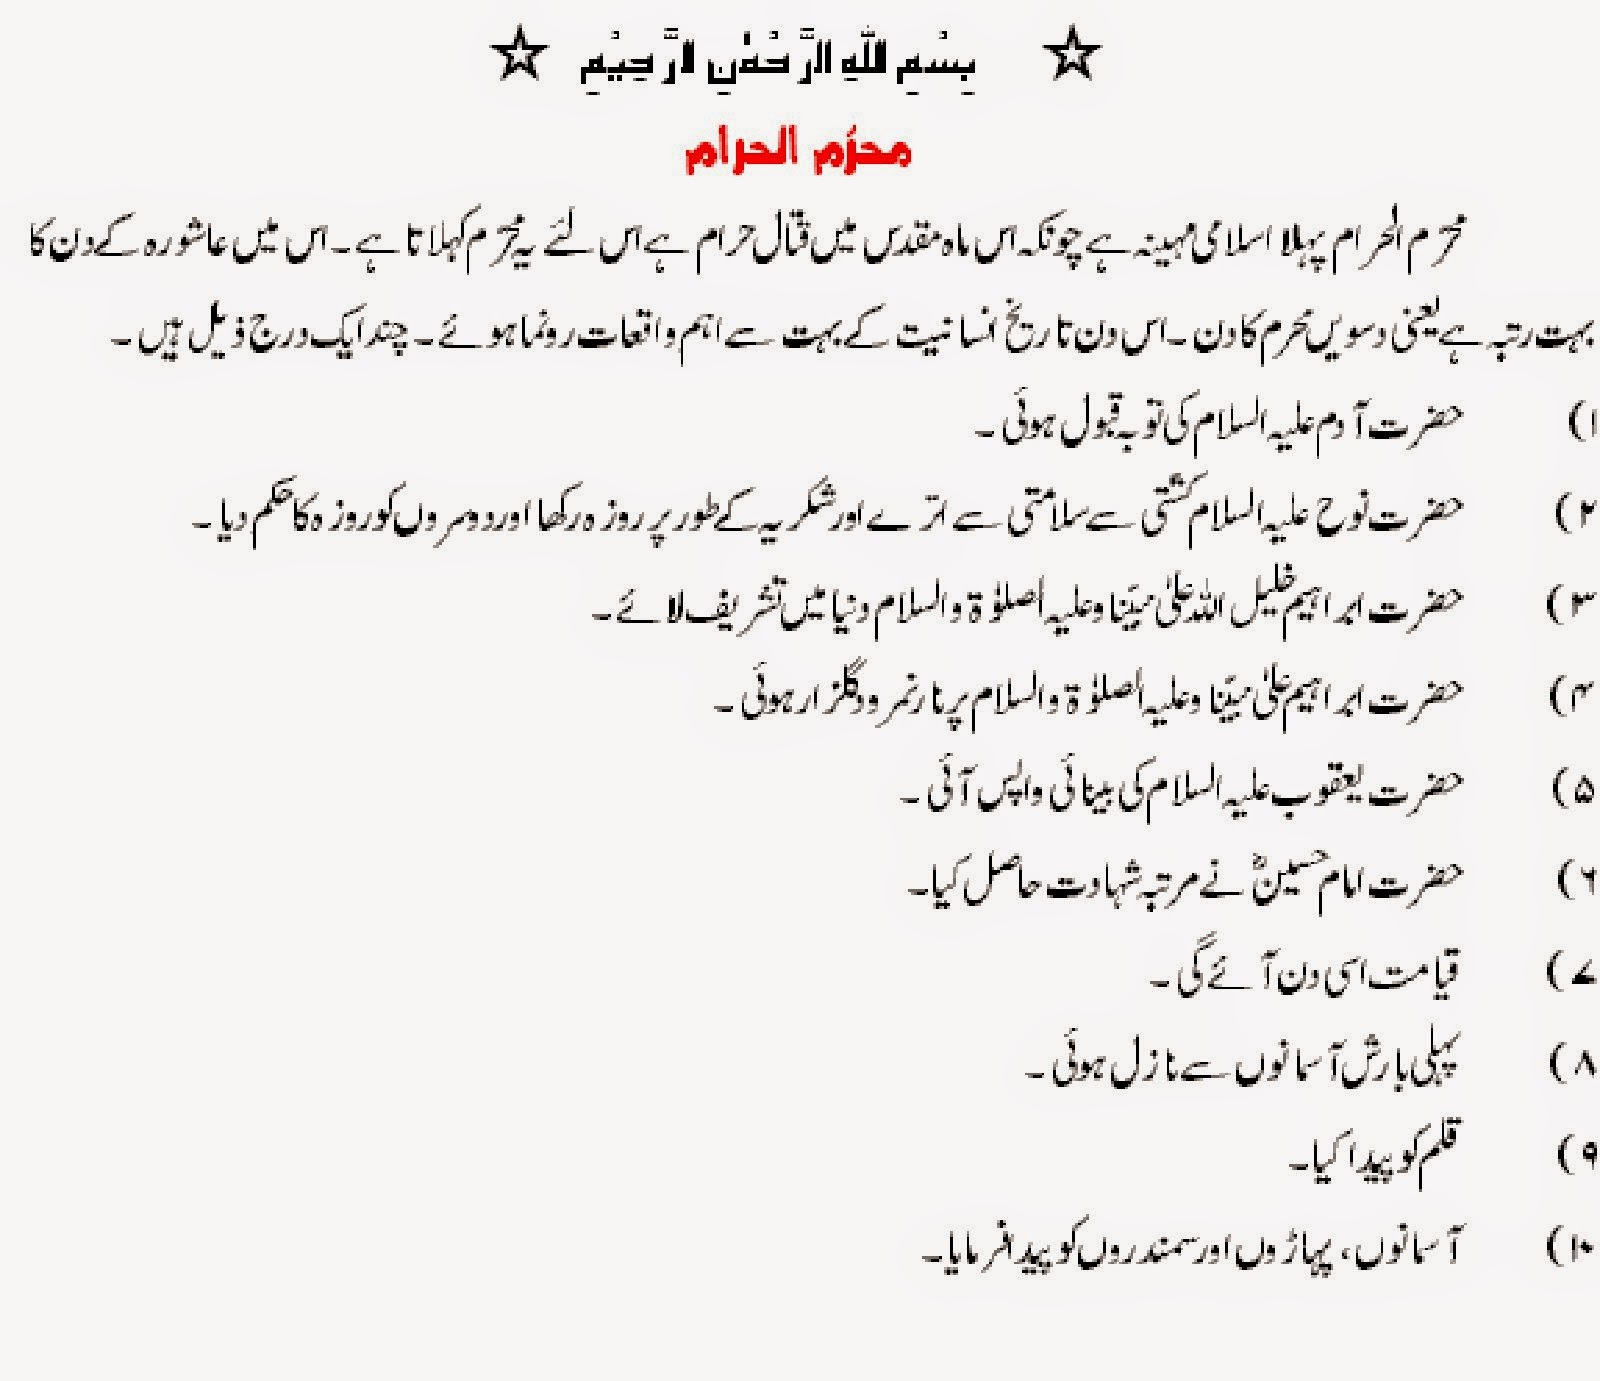 Special Days In Islam: Details 10th Muharram Details Of Ashura